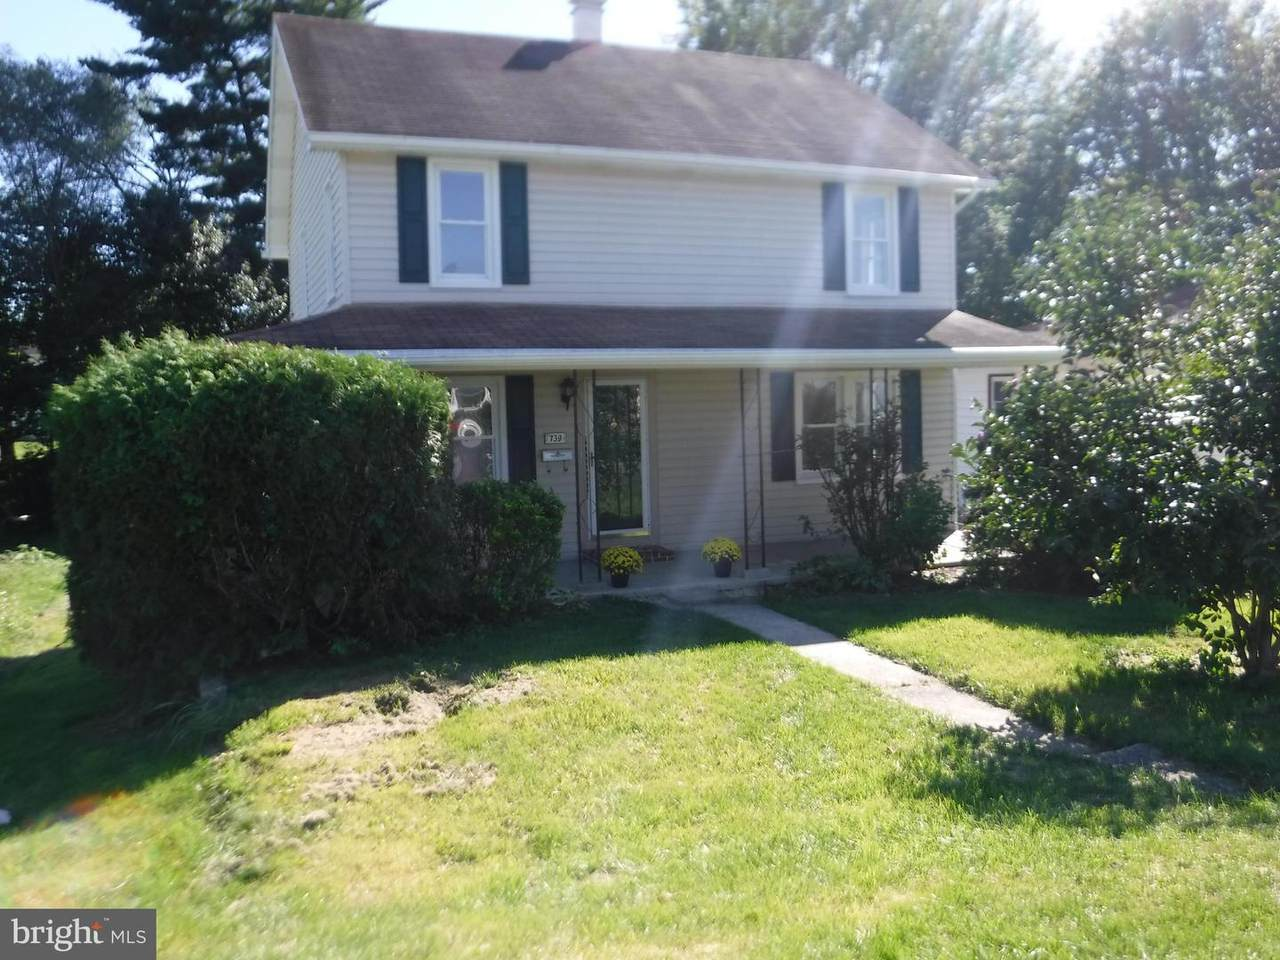 739 Medway Road - Photo 1